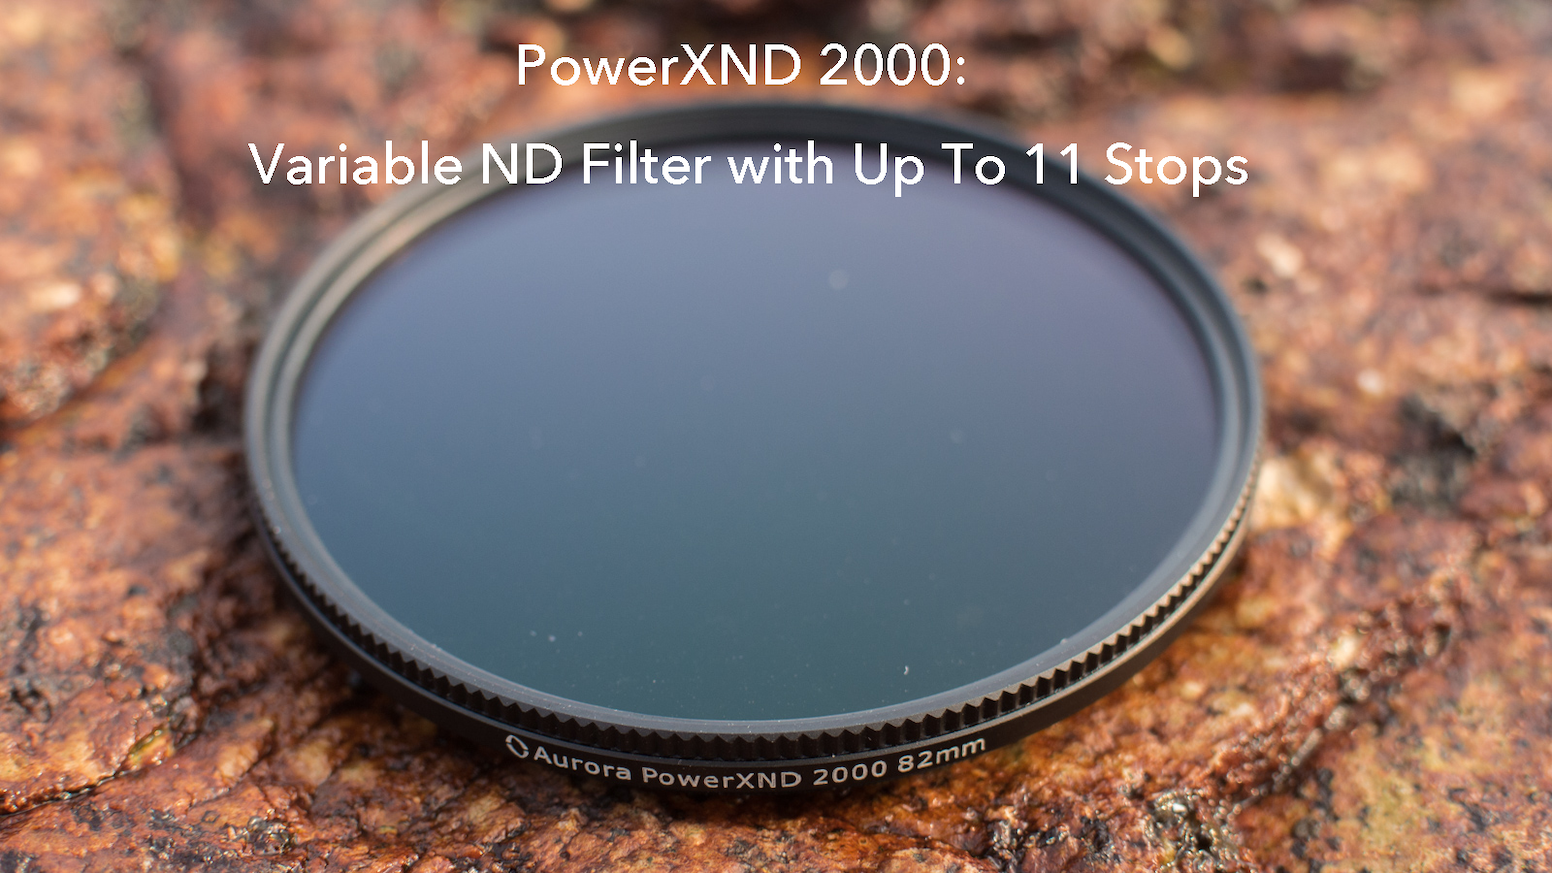 PowerXND 2000 is the most powerful variable neutral density filter with up to 11 stops (ND 2000) of light stopping power.